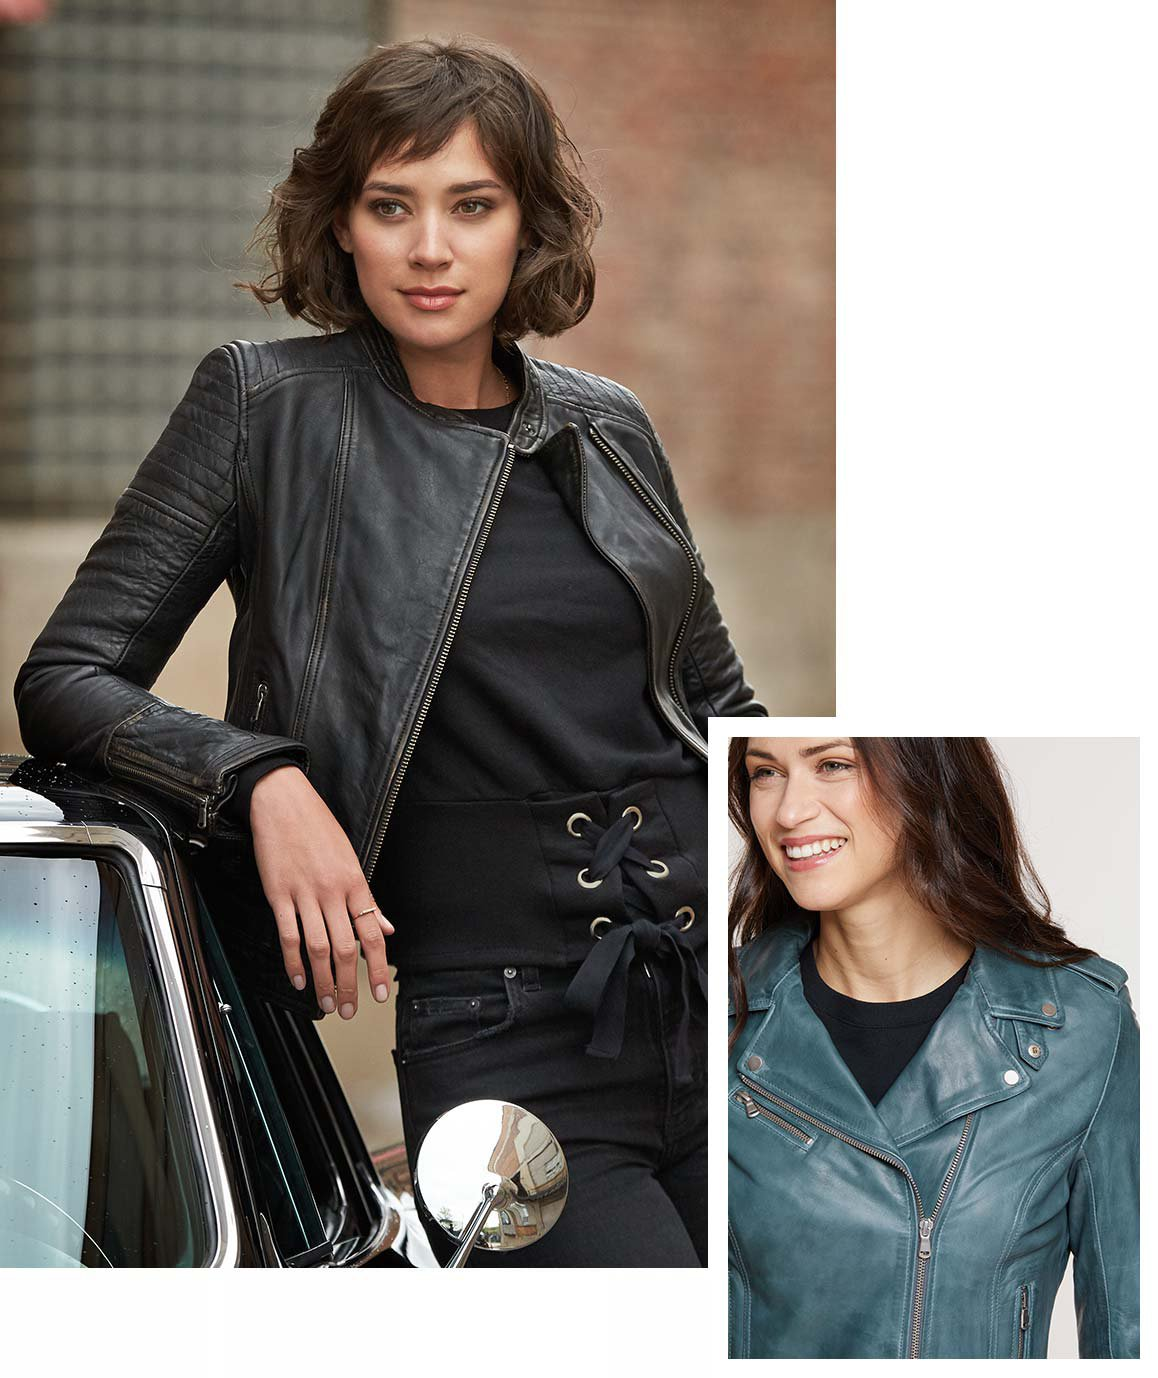 What Women S Leather Jacket To Buy 6 Classic Styles Overland We loved the vintage nineties feel of this hip skimming jacket that did away with the usual shiny zips and large lapels seen on traditional biker styles. what women s leather jacket to buy 6